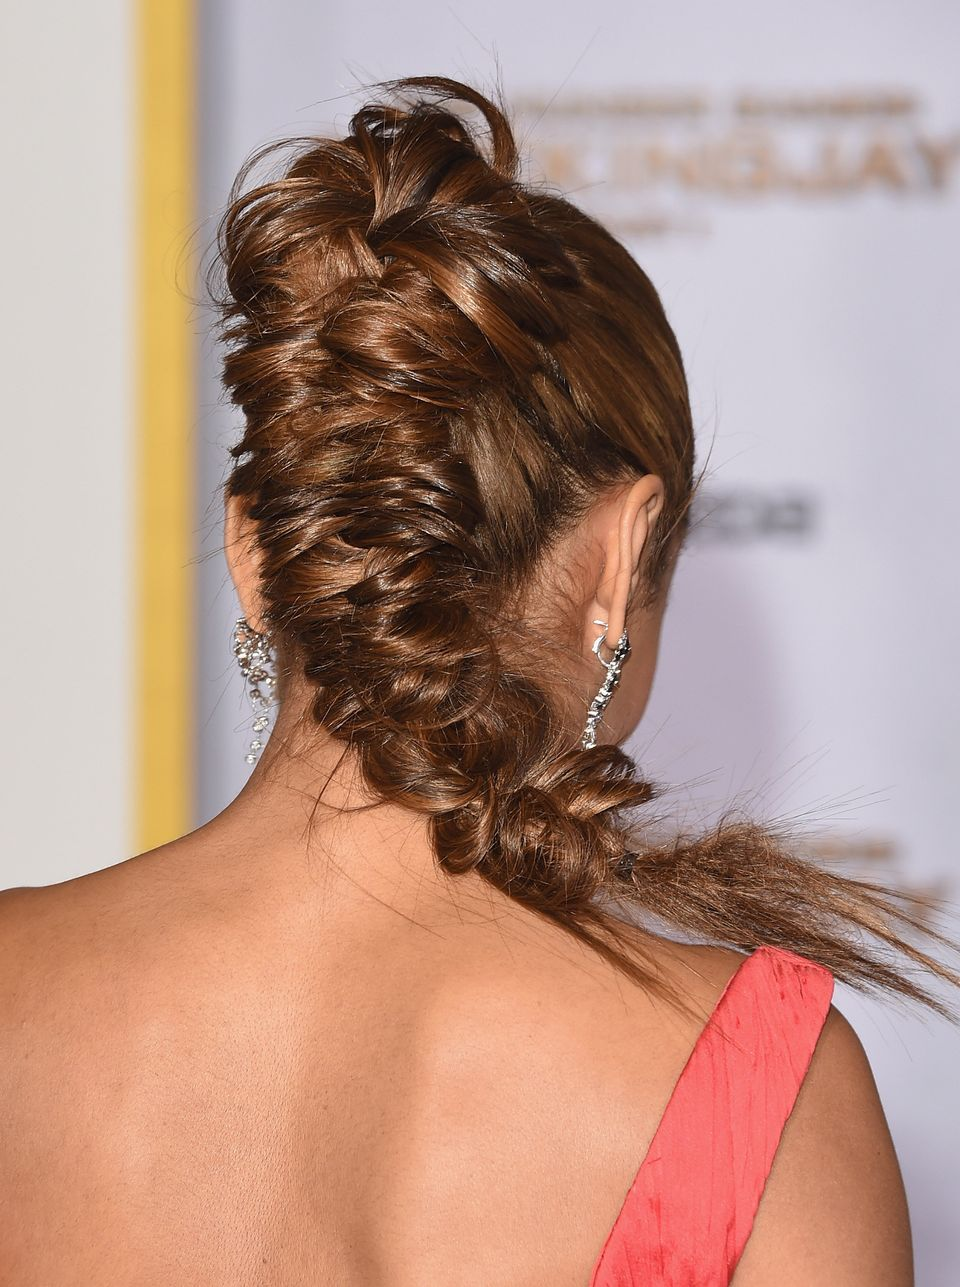 17 Photos That Will Inspire You To Learn How To Fishtail Braid ...